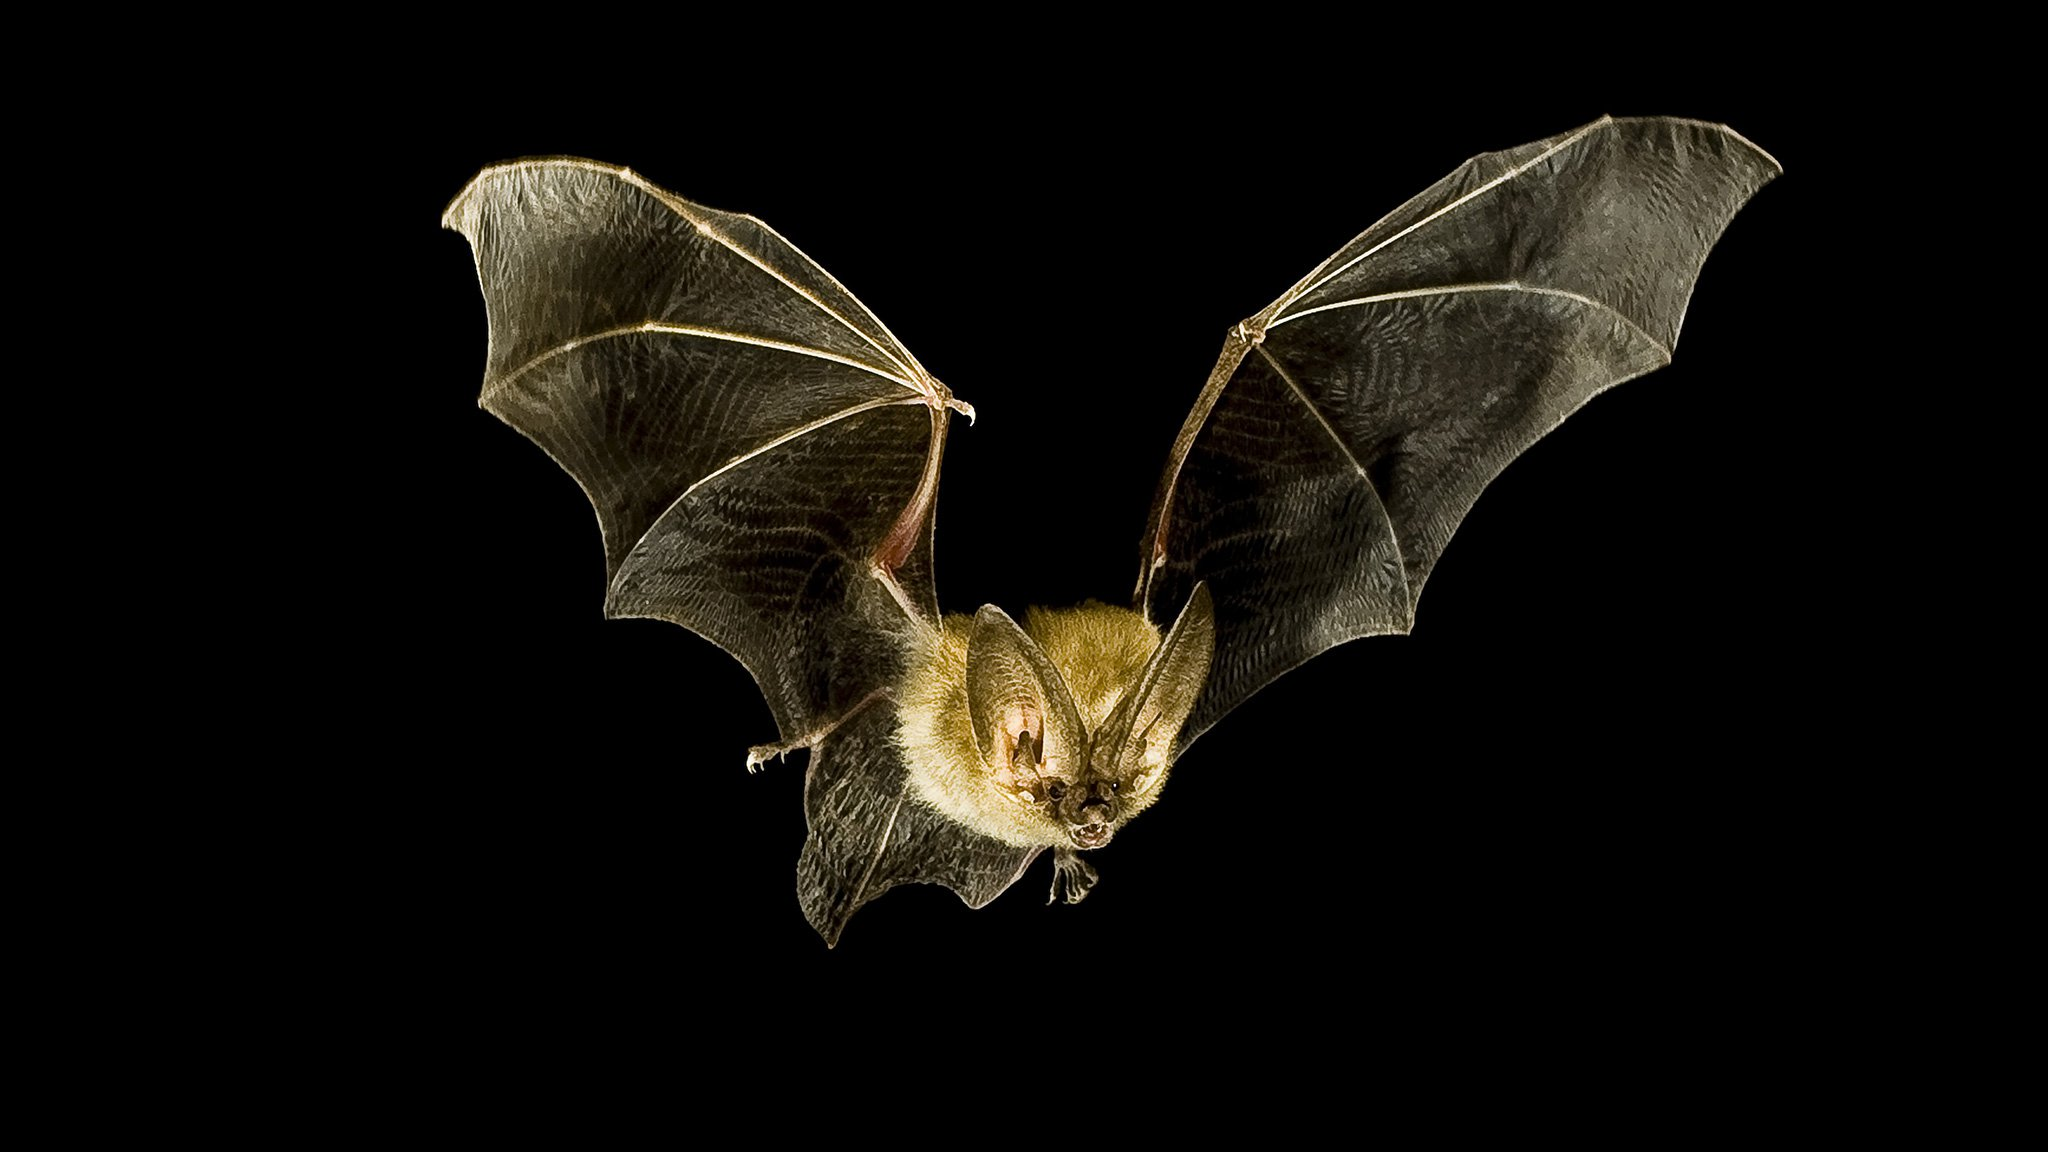 Bat Inspired Tech Could Help Blind People See With Sound